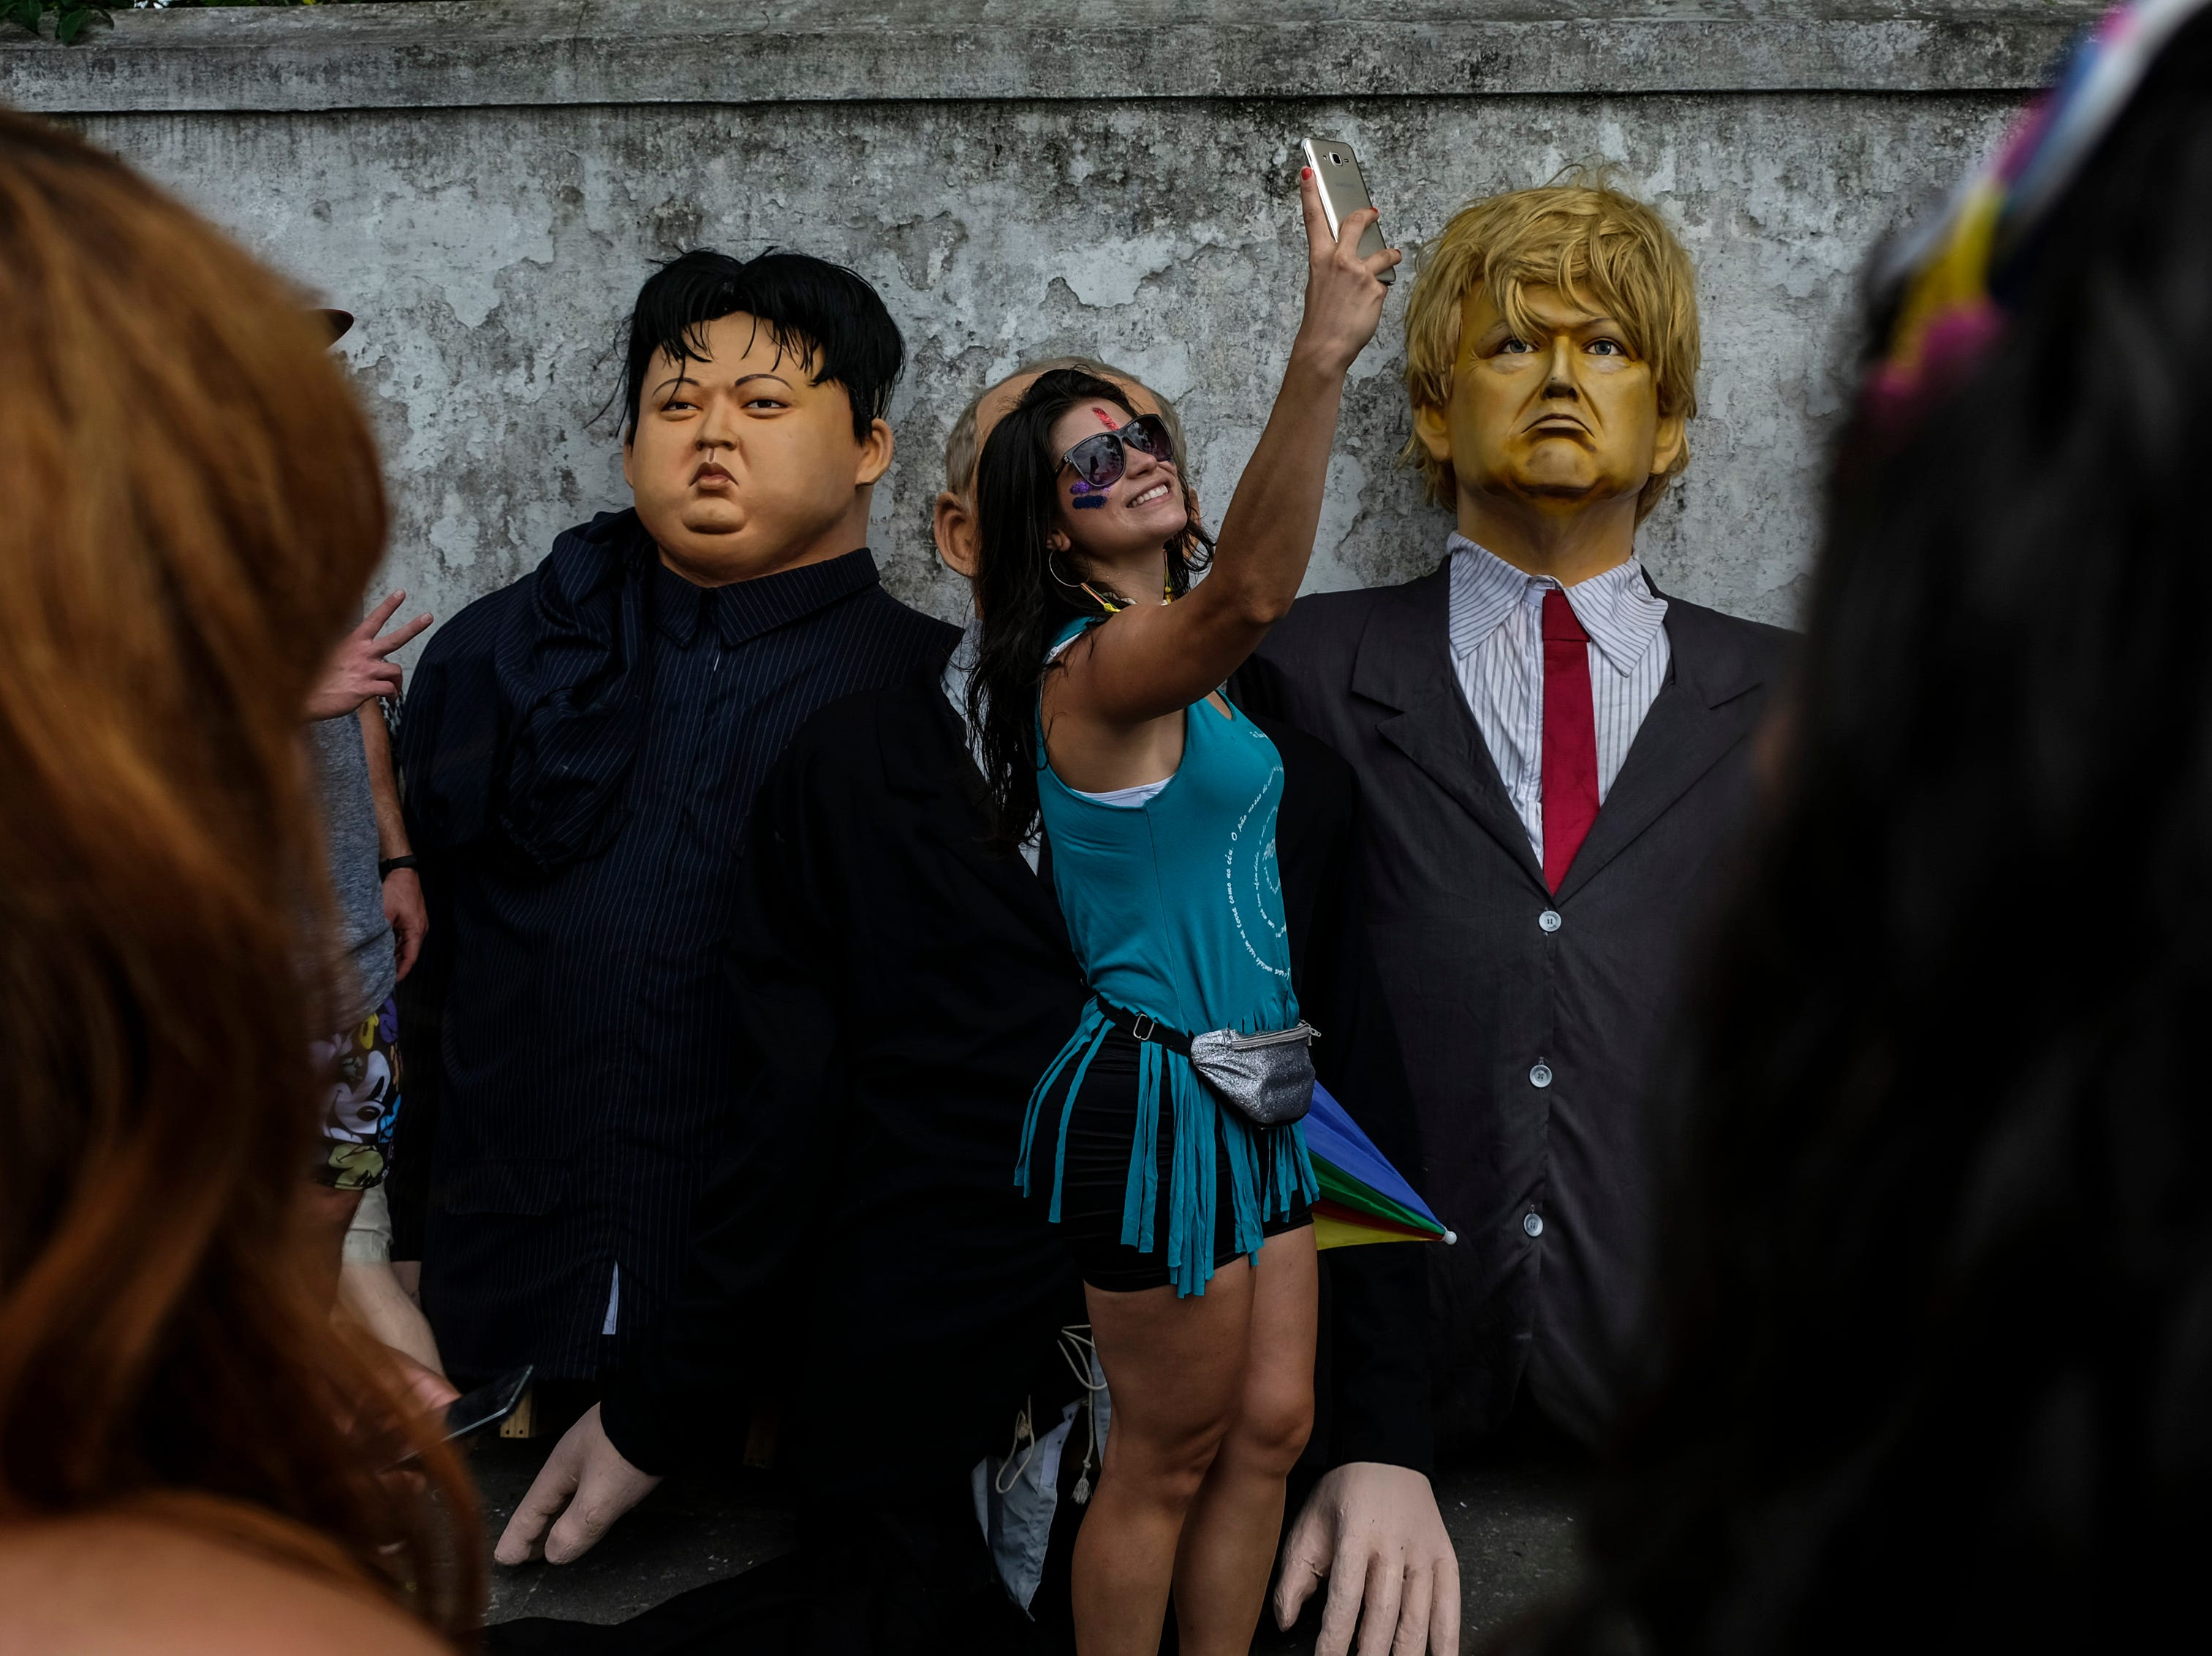 A woman takes a selfie next to giant dolls depicting U.S. President Donald Trump, right, and North Korean leader Kim Jong-un during carnival celebrations in Olinda, Pernambuco state, Brazil, Monday, March 4, 2019.